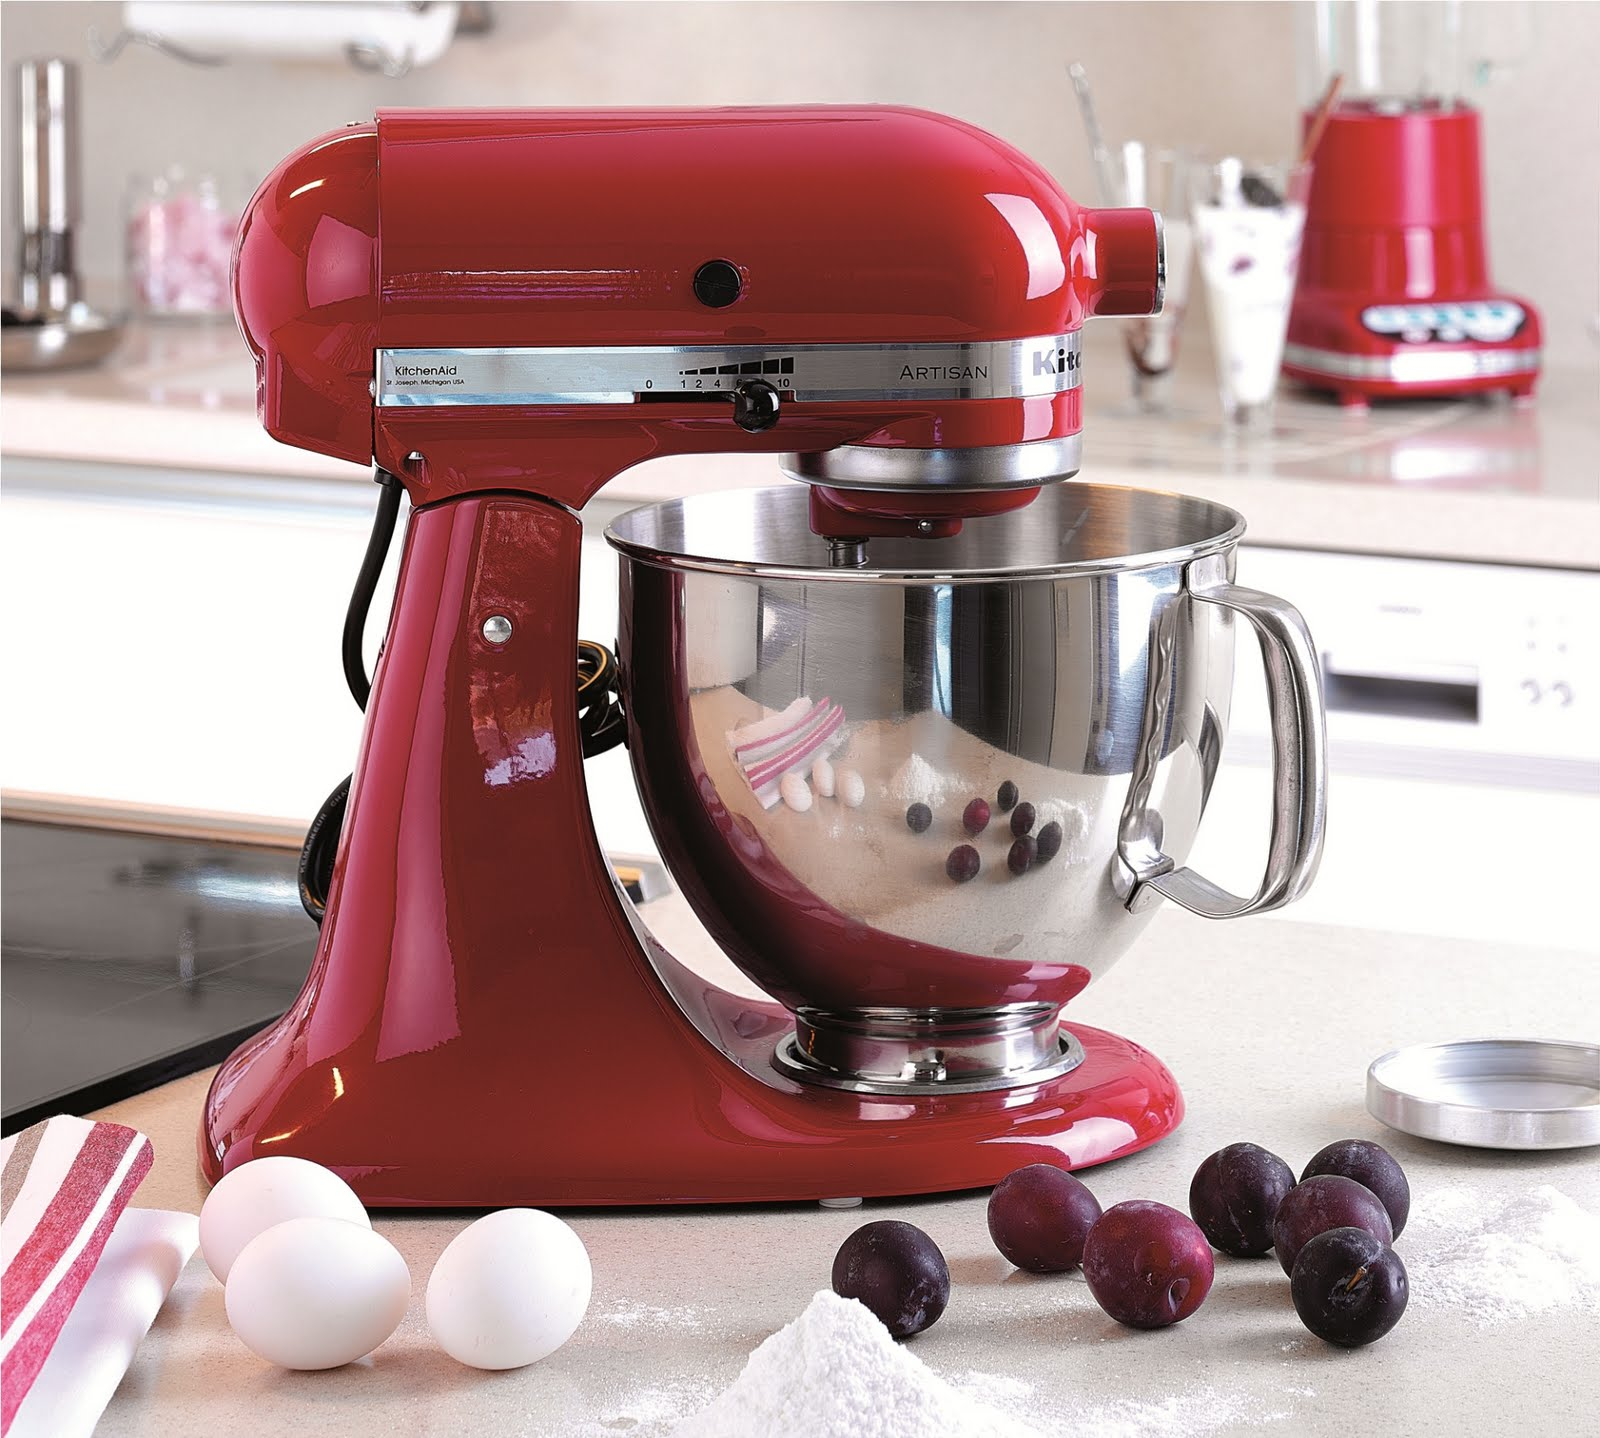 Kitchenaid S Artisan Stand Mixer Design Corner